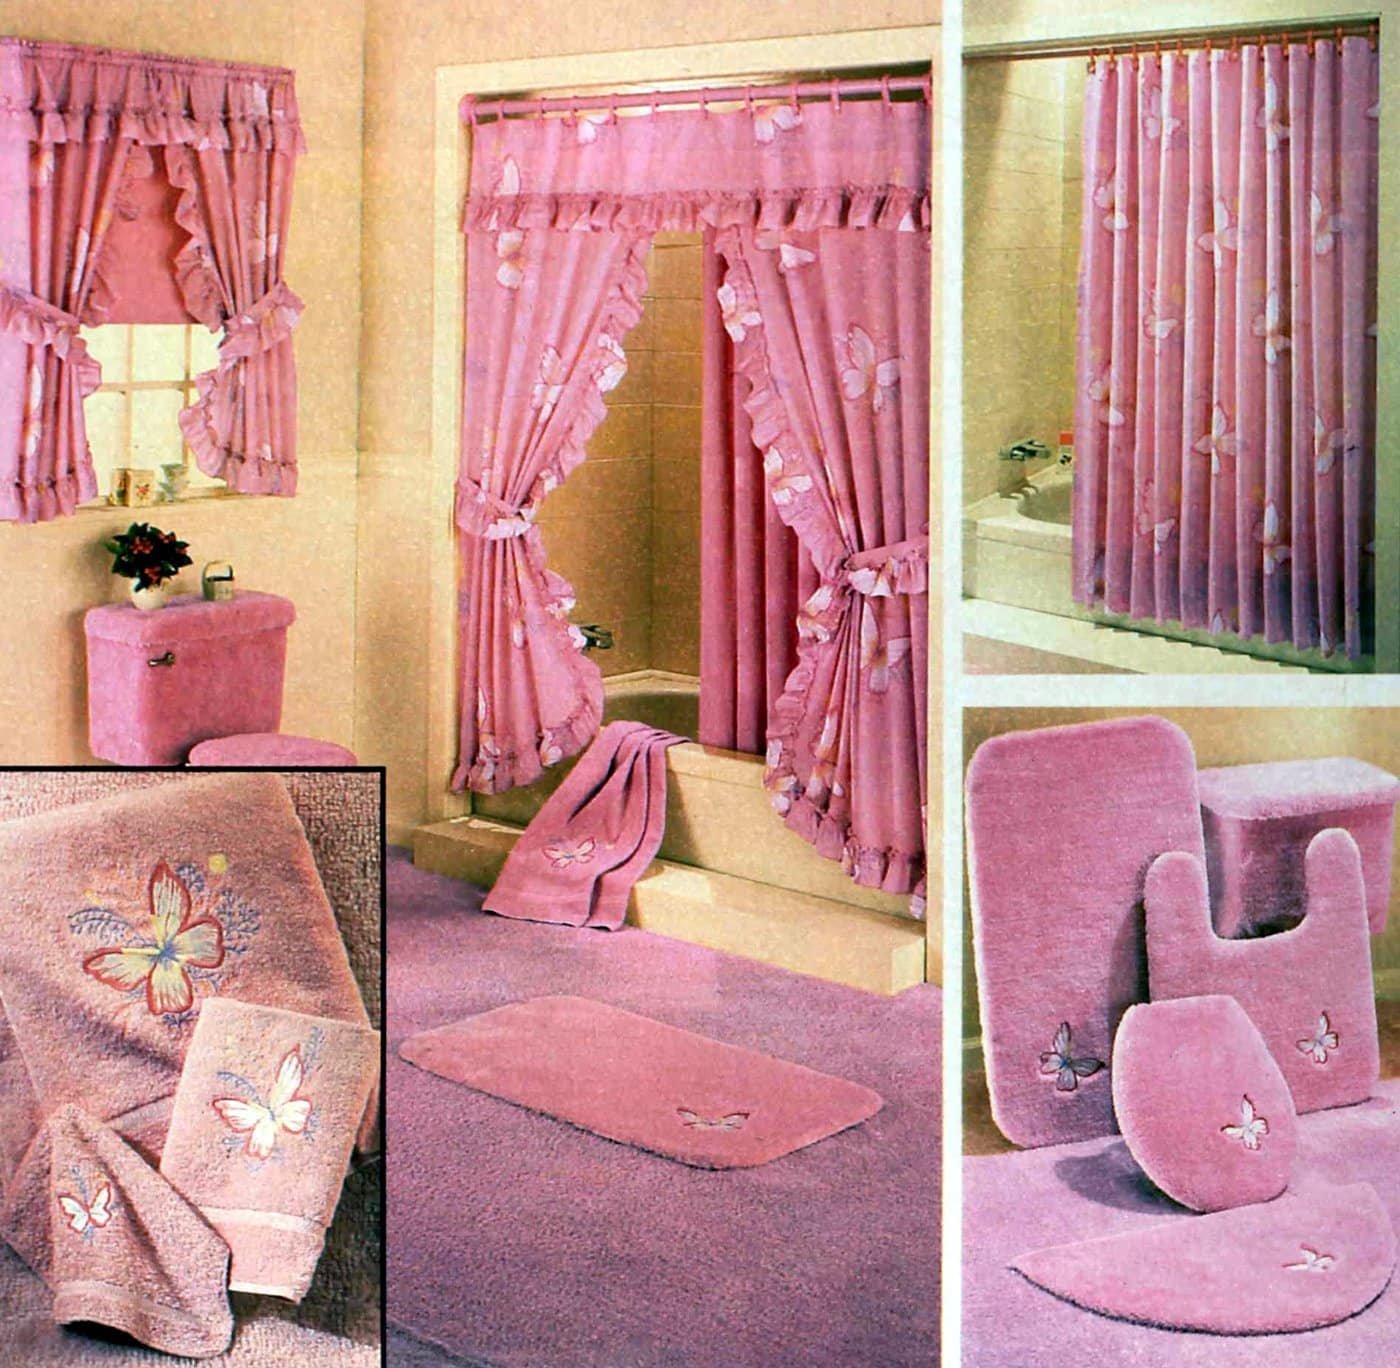 Retro 1980s pink bathroom decor and frilly curtains